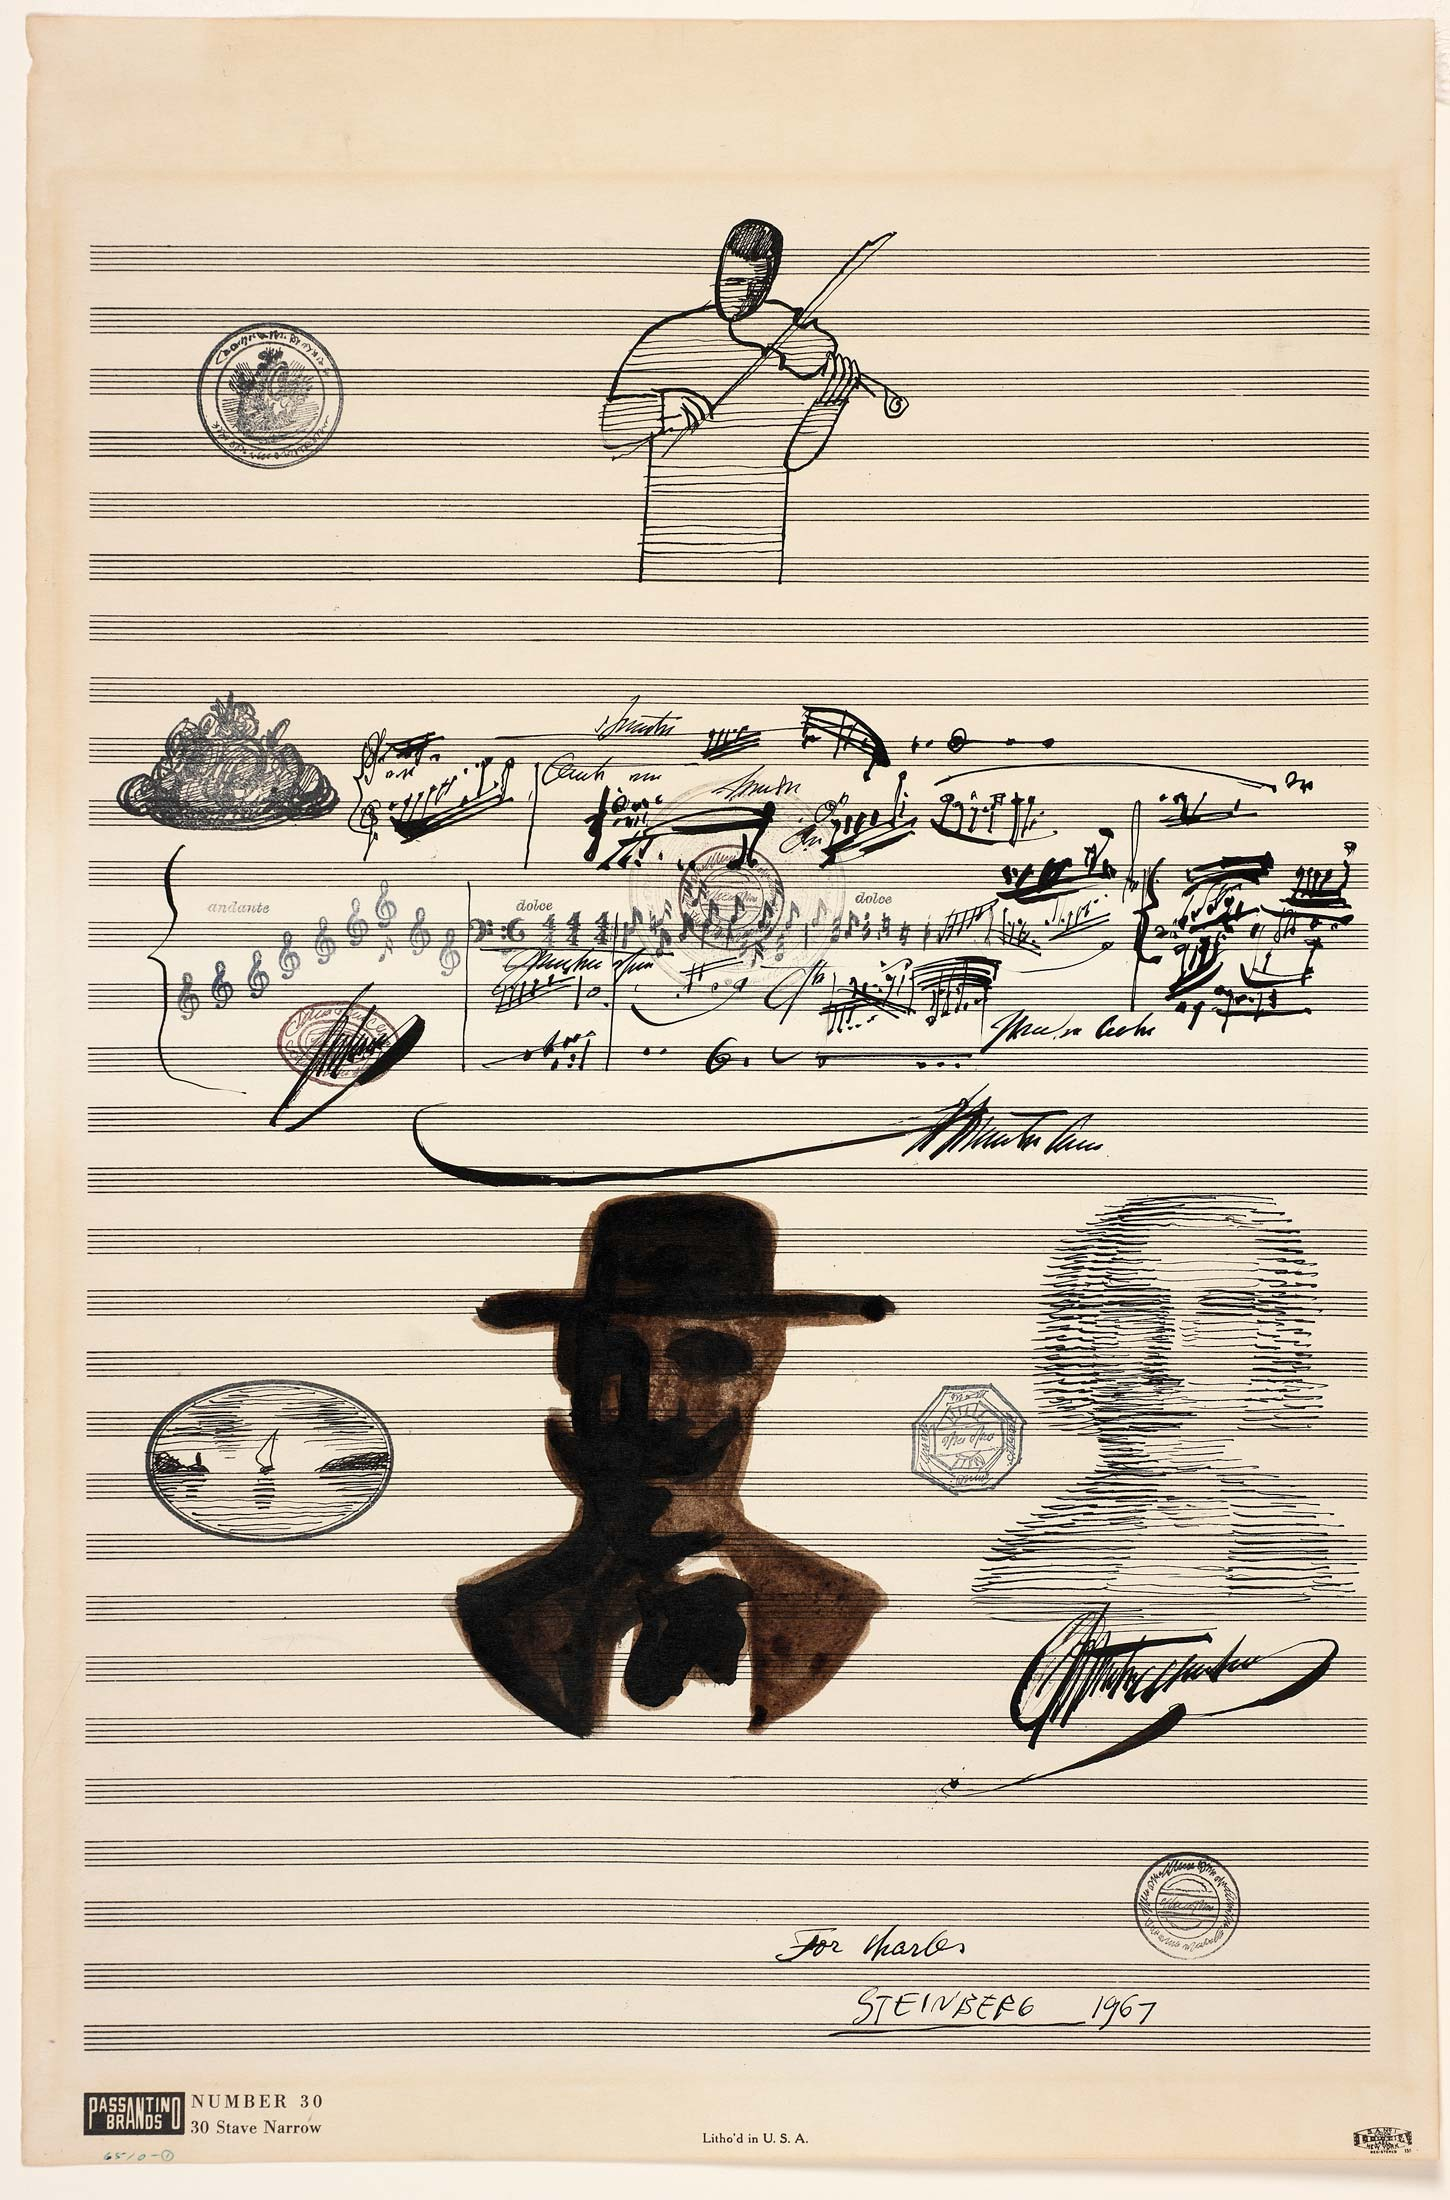 <em>Untitled (For Charles)</em>, 1967. Ink and rubber stamp on sheet music paper, 19 x 12 ½ in. Smith College Museum of Art, Northampton, Massachusetts; Bequest of Charles Blitzer.